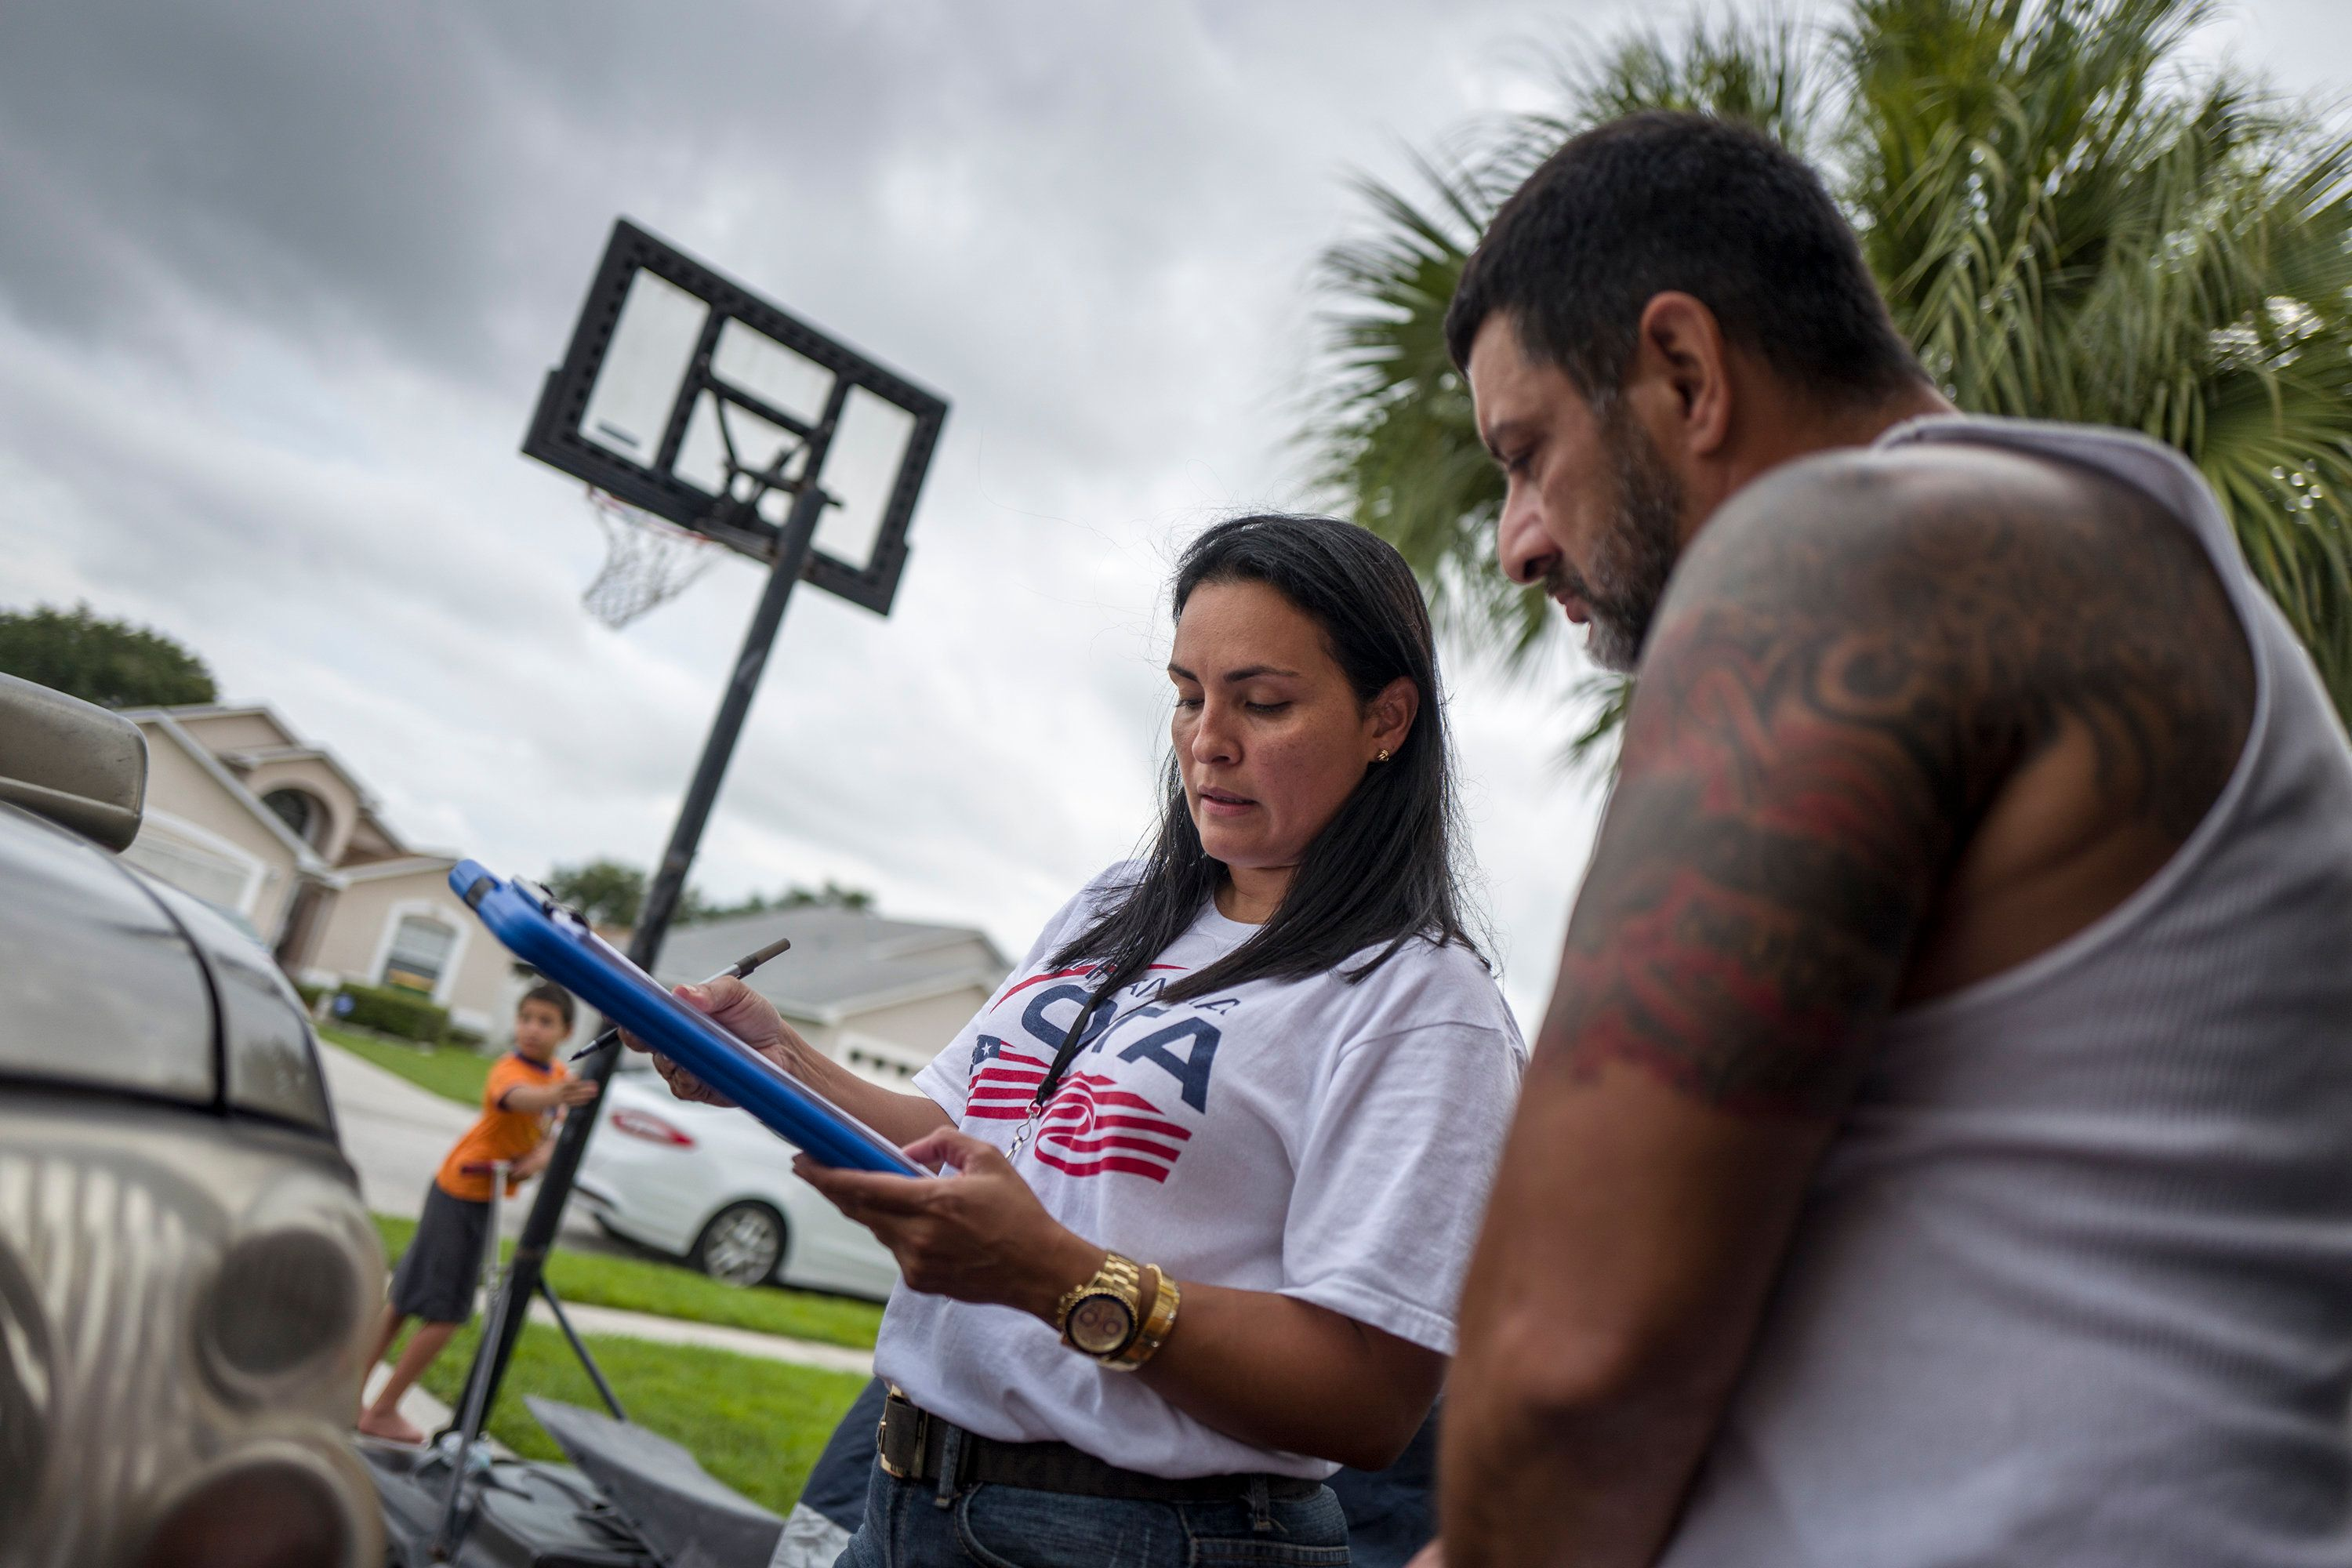 Mi Familia Vota registers voters in a Puerto Rican neighborhood in Kissimmee, Florida.